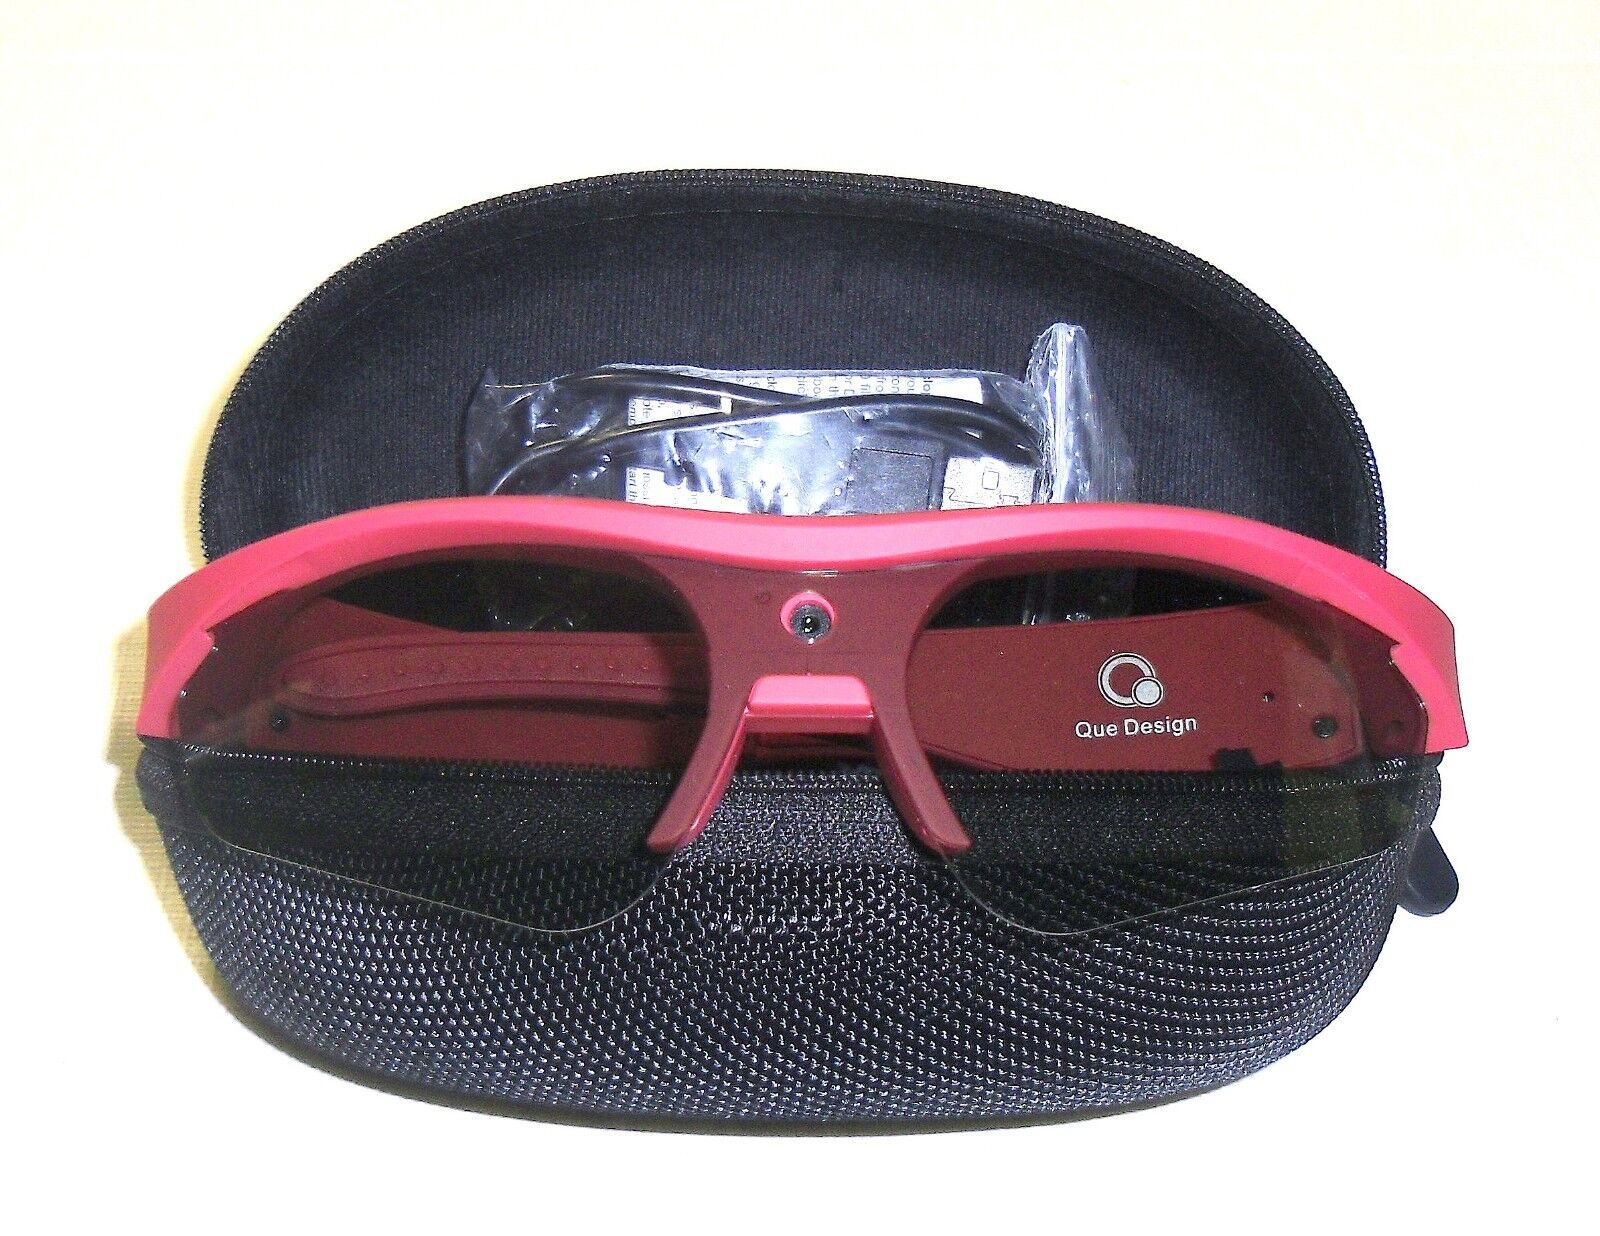 New, As Seen on QVC, QUE Cyclops 1080p HD Video Sun Glasses w/ 8GB SD Card RED